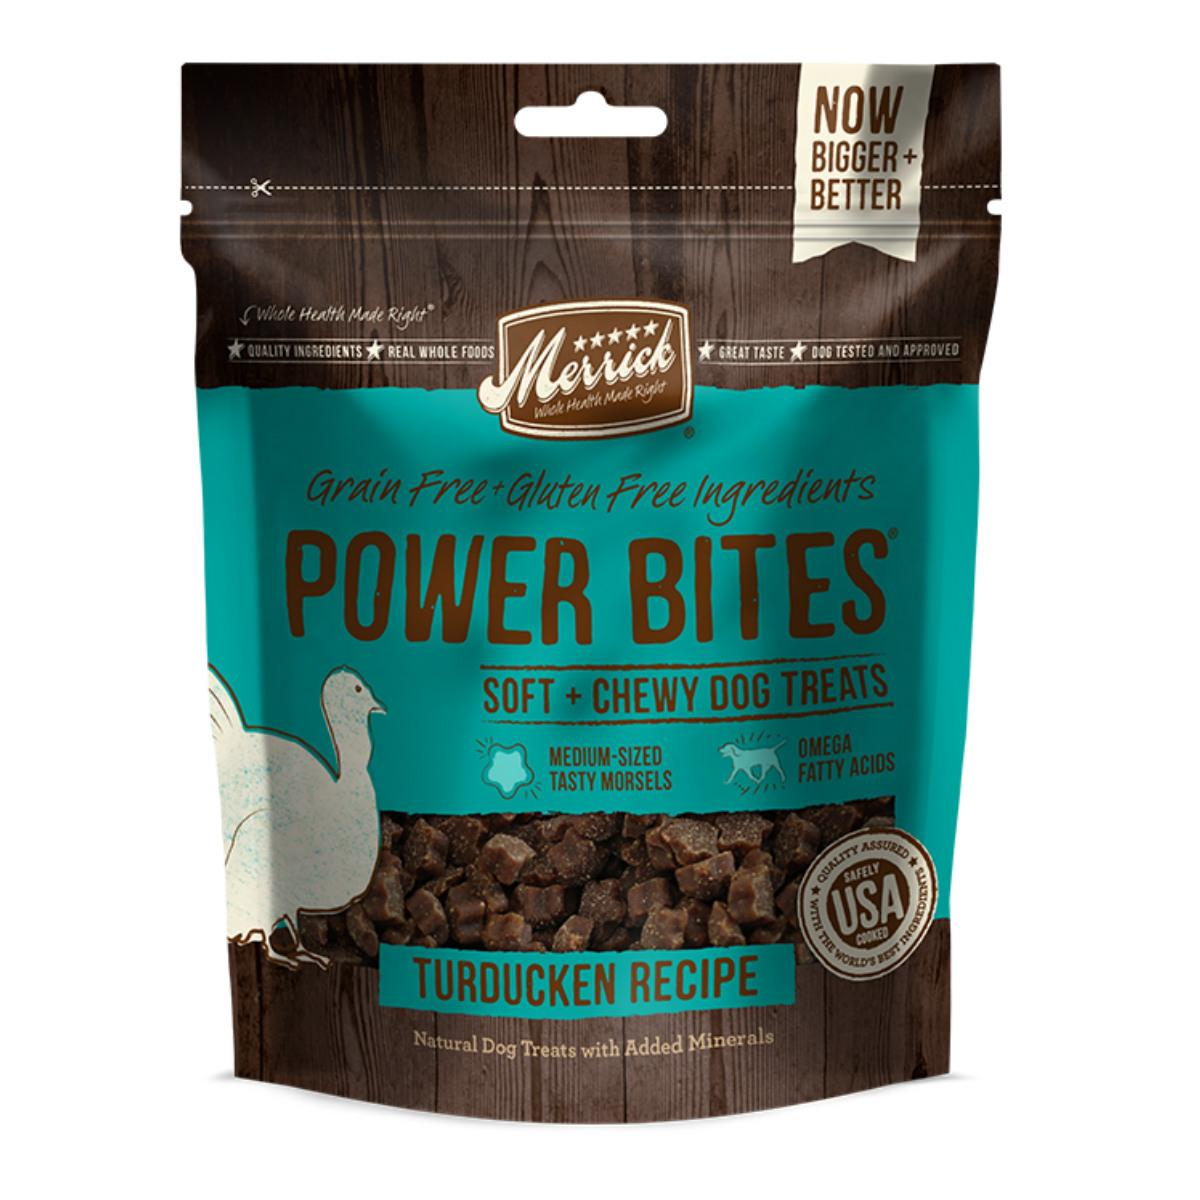 Merrick Power Bites Dog Treats - Turducken